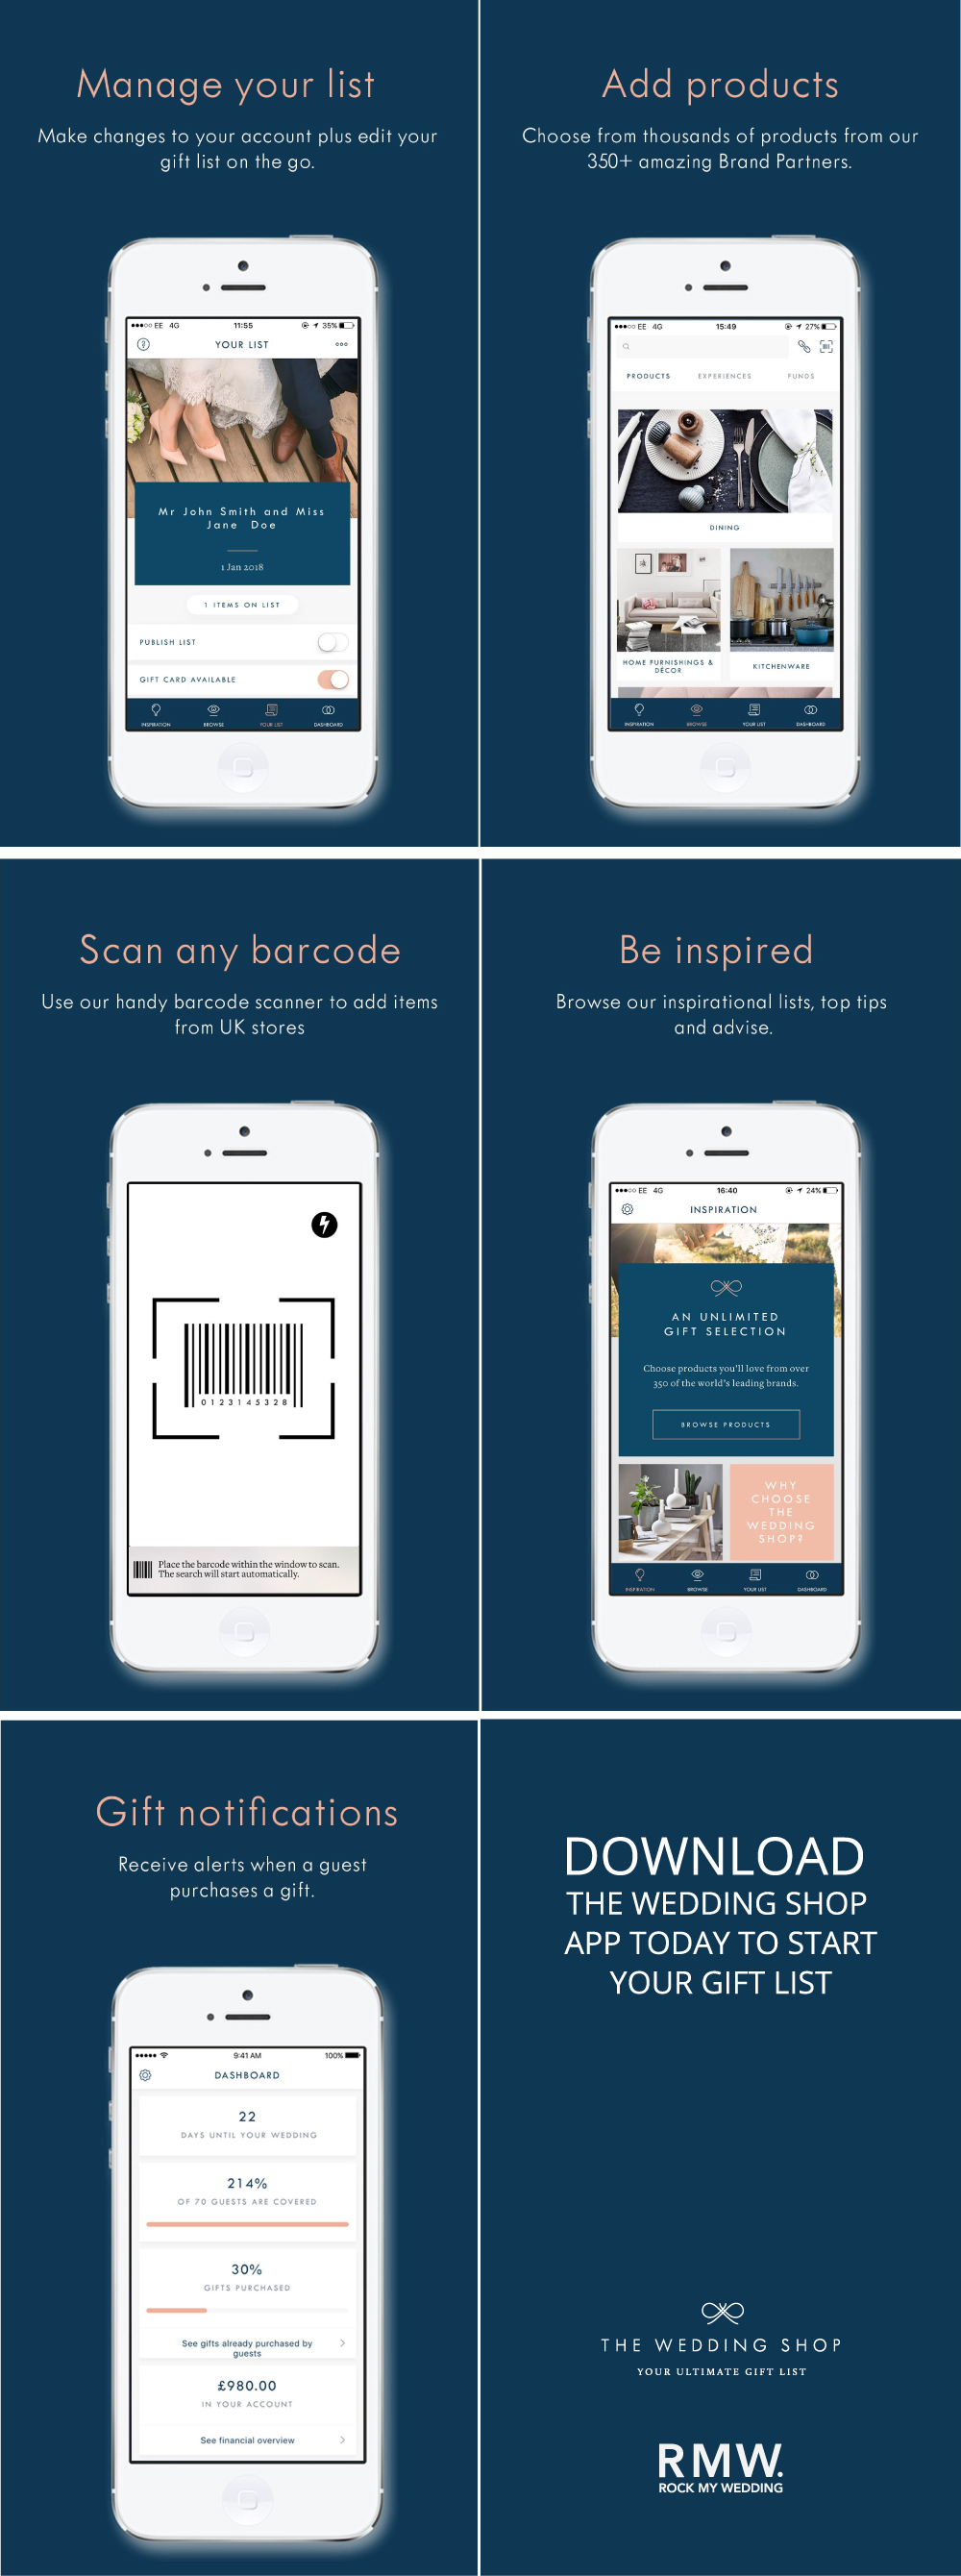 Creating Your Wedding Gift List With The Wedding Shop App